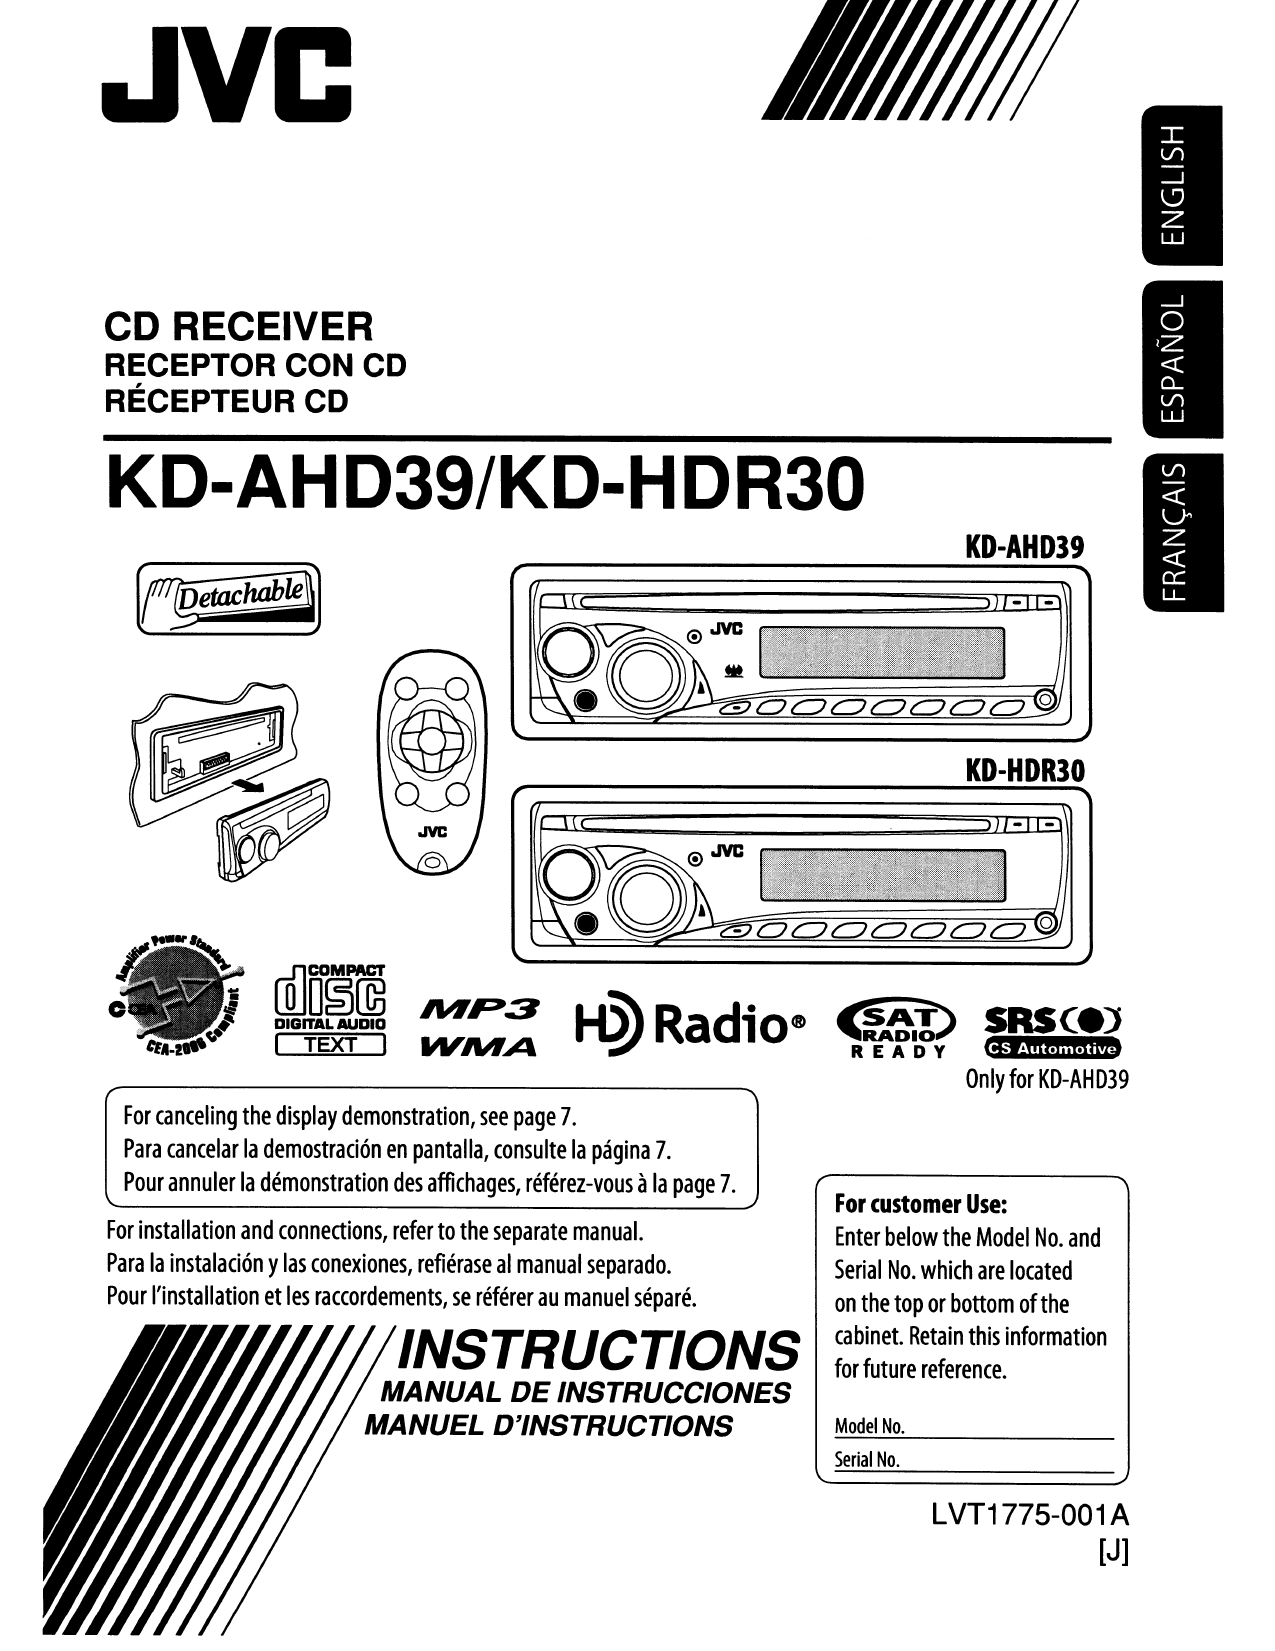 Download free pdf for JVC Arsenal KD-AHD39 Car Receiver manual